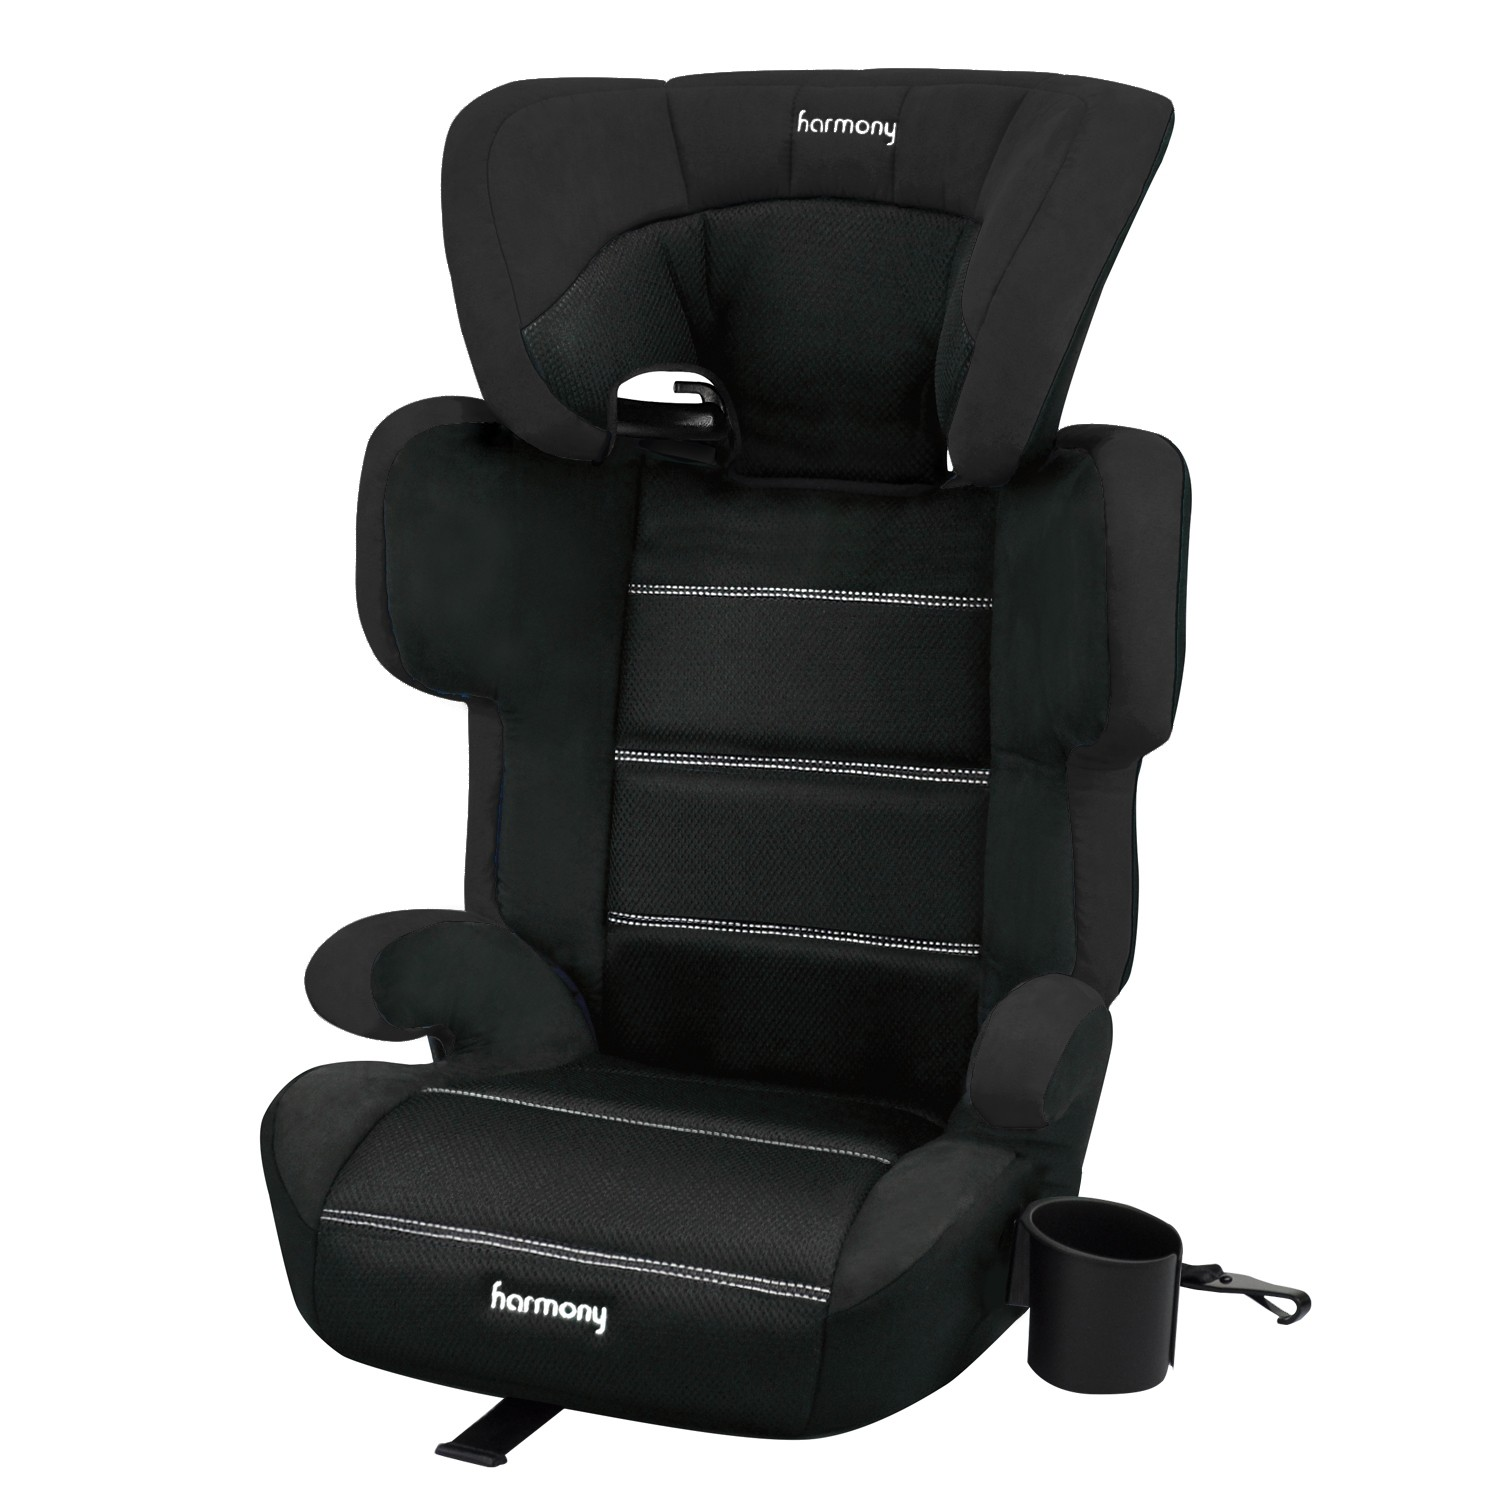 Dreamtime Elite Comfort Booster Car Seat with UAS - Black